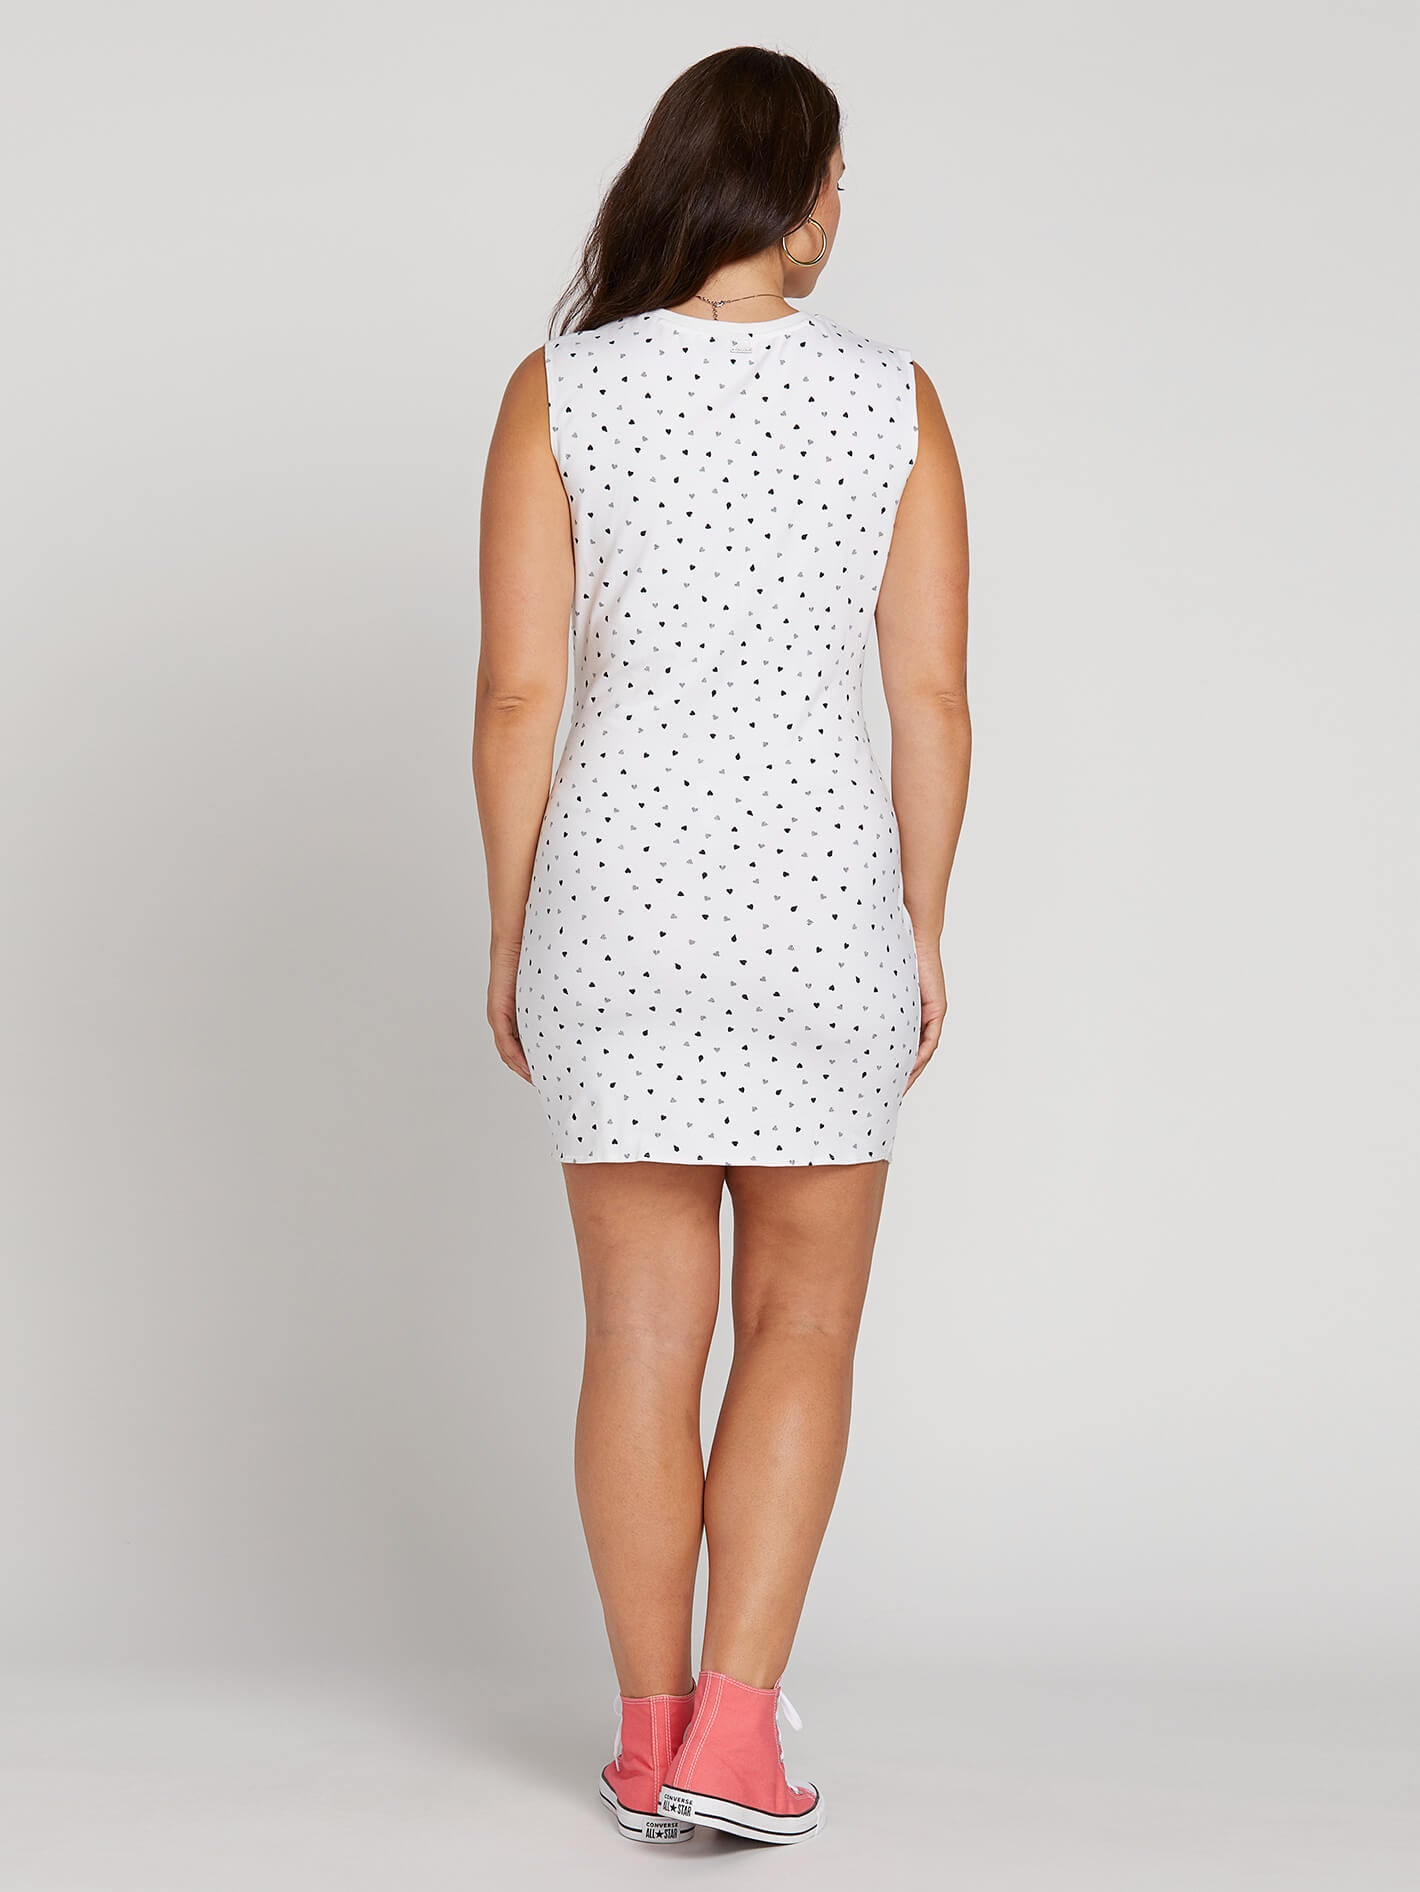 ba86be6a5c04 Last Drink Dress - White Combo in WHITE COMBO - Alternative View